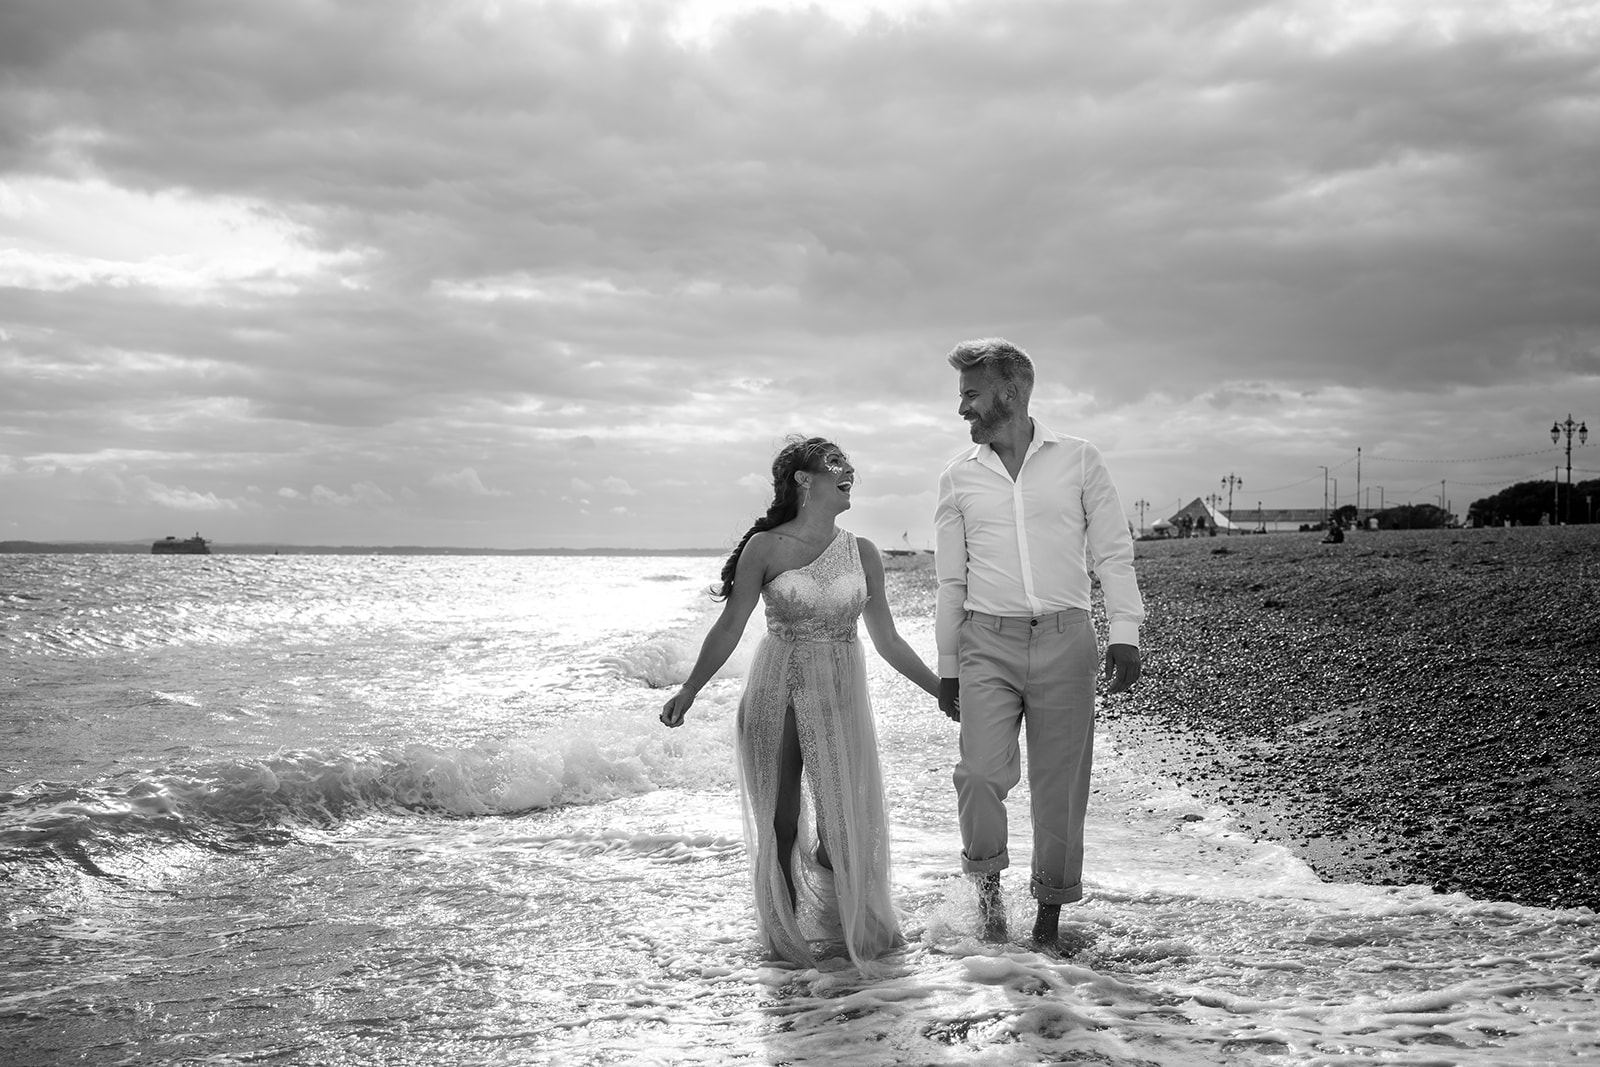 mermaid wedding - beach wedding - quirky wedding - unique wedding - alternative seaside wedding - alternative wedding - bride and groom walking on beach